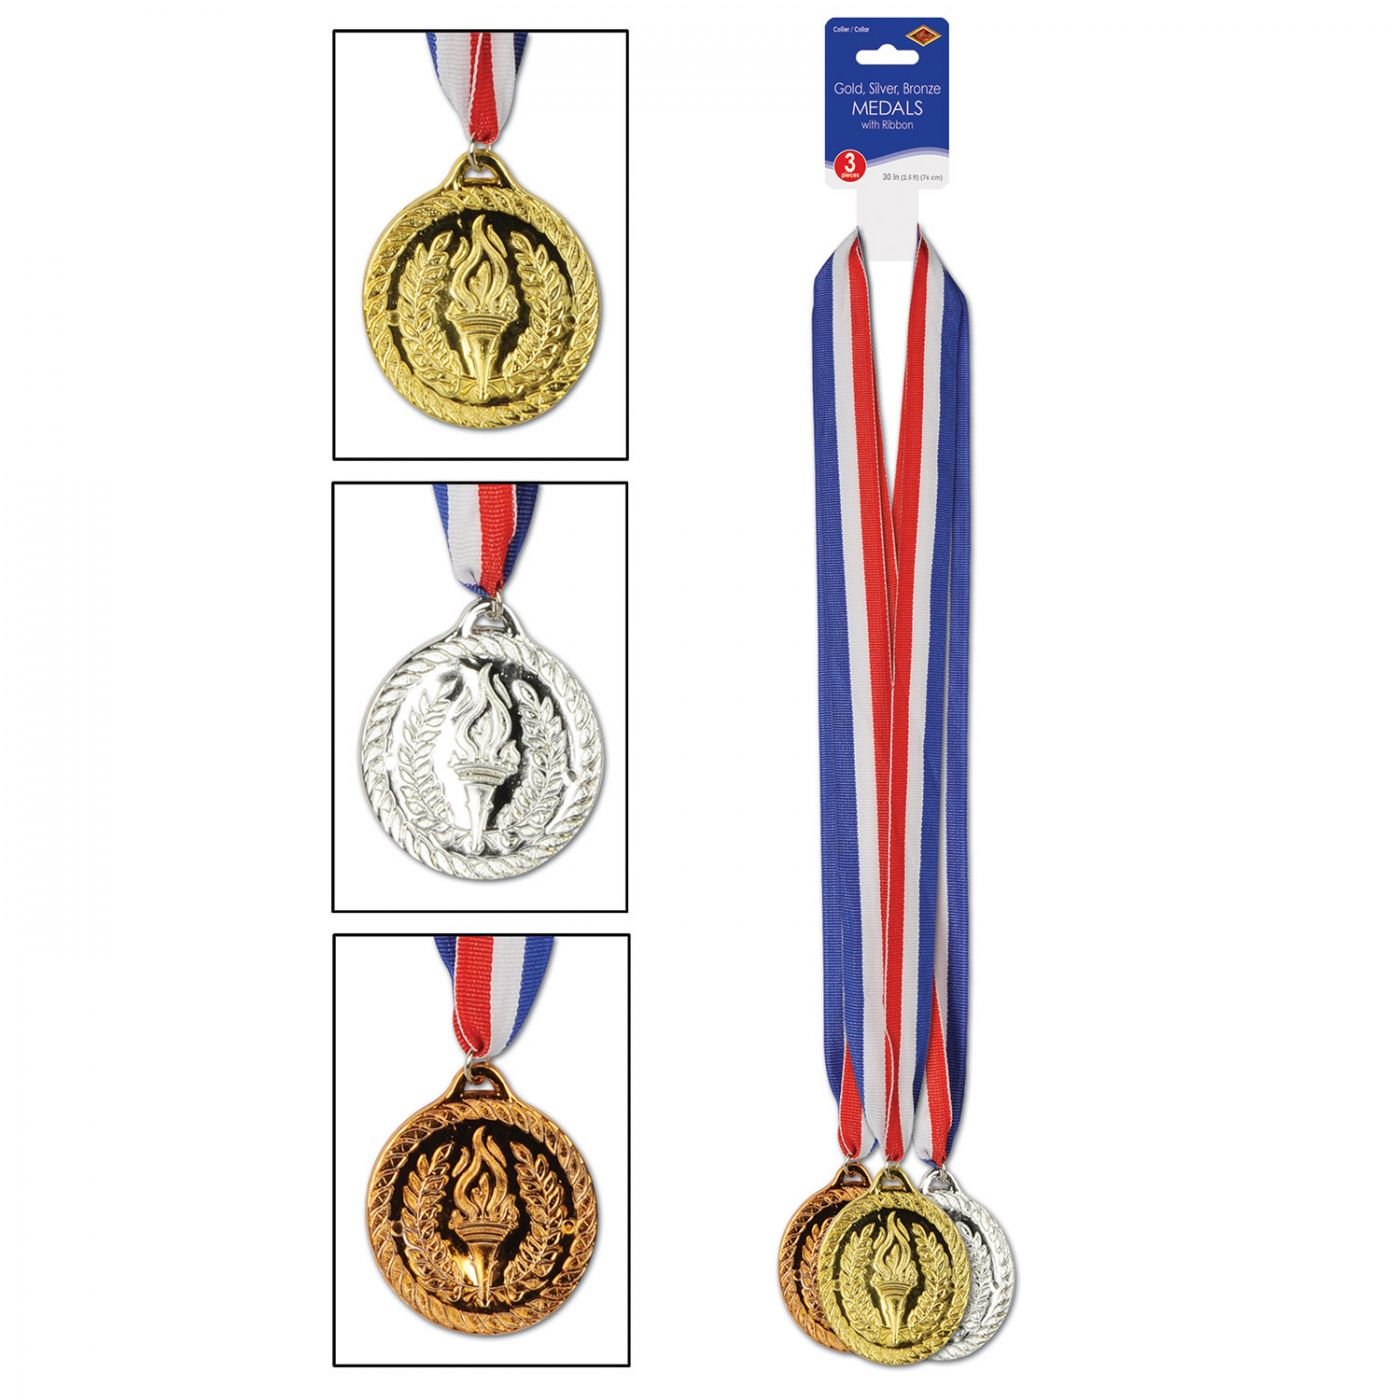 Gold, Silver & Bronze Medals w/Ribbon (4) image